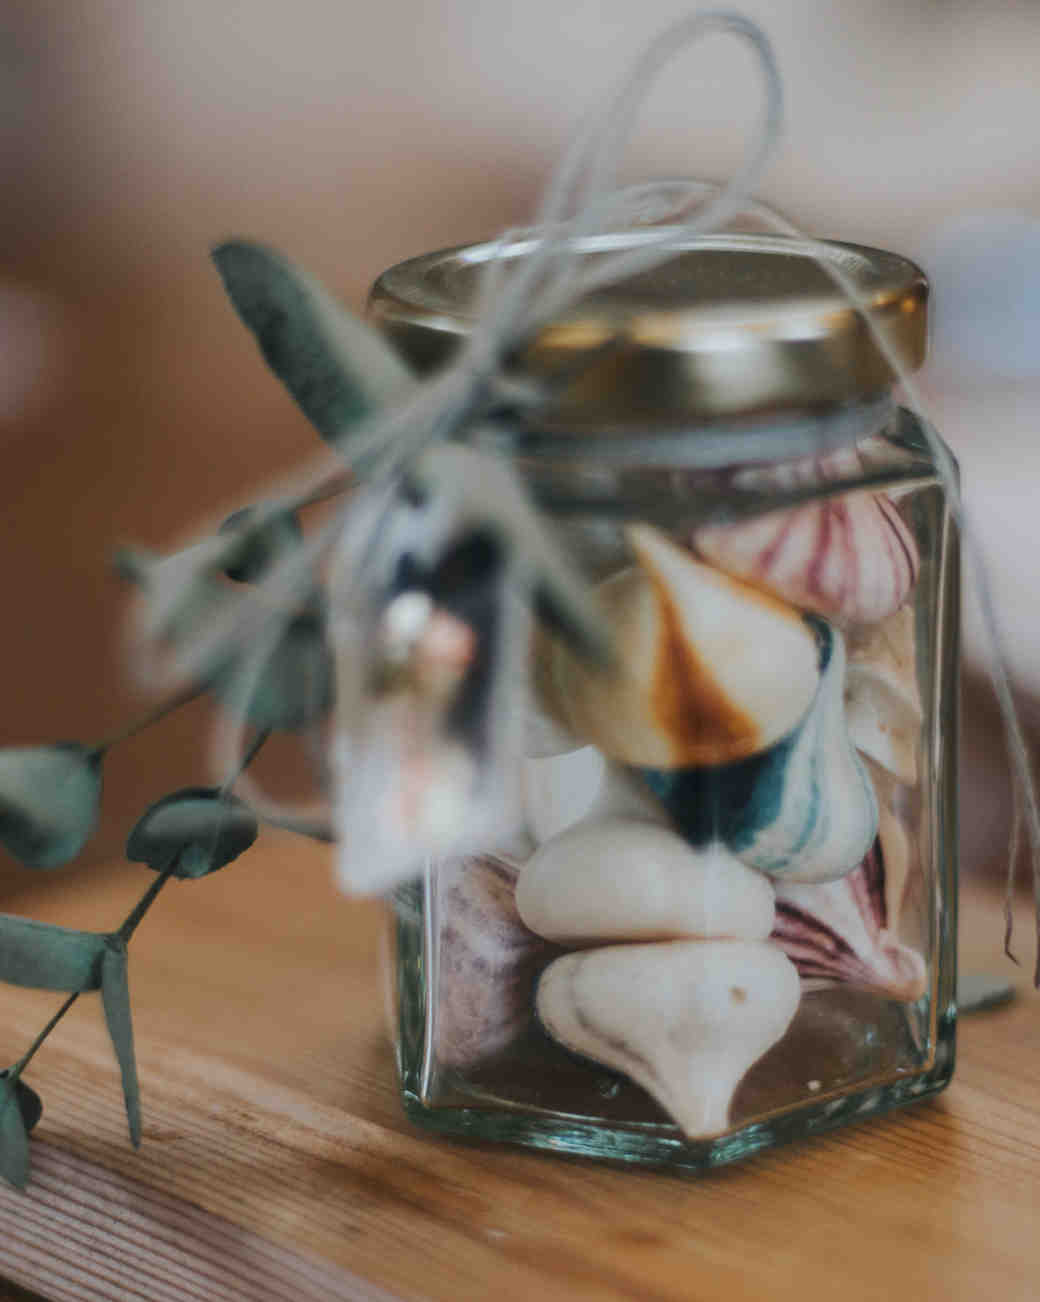 Shell-Like Meringues in a Jar